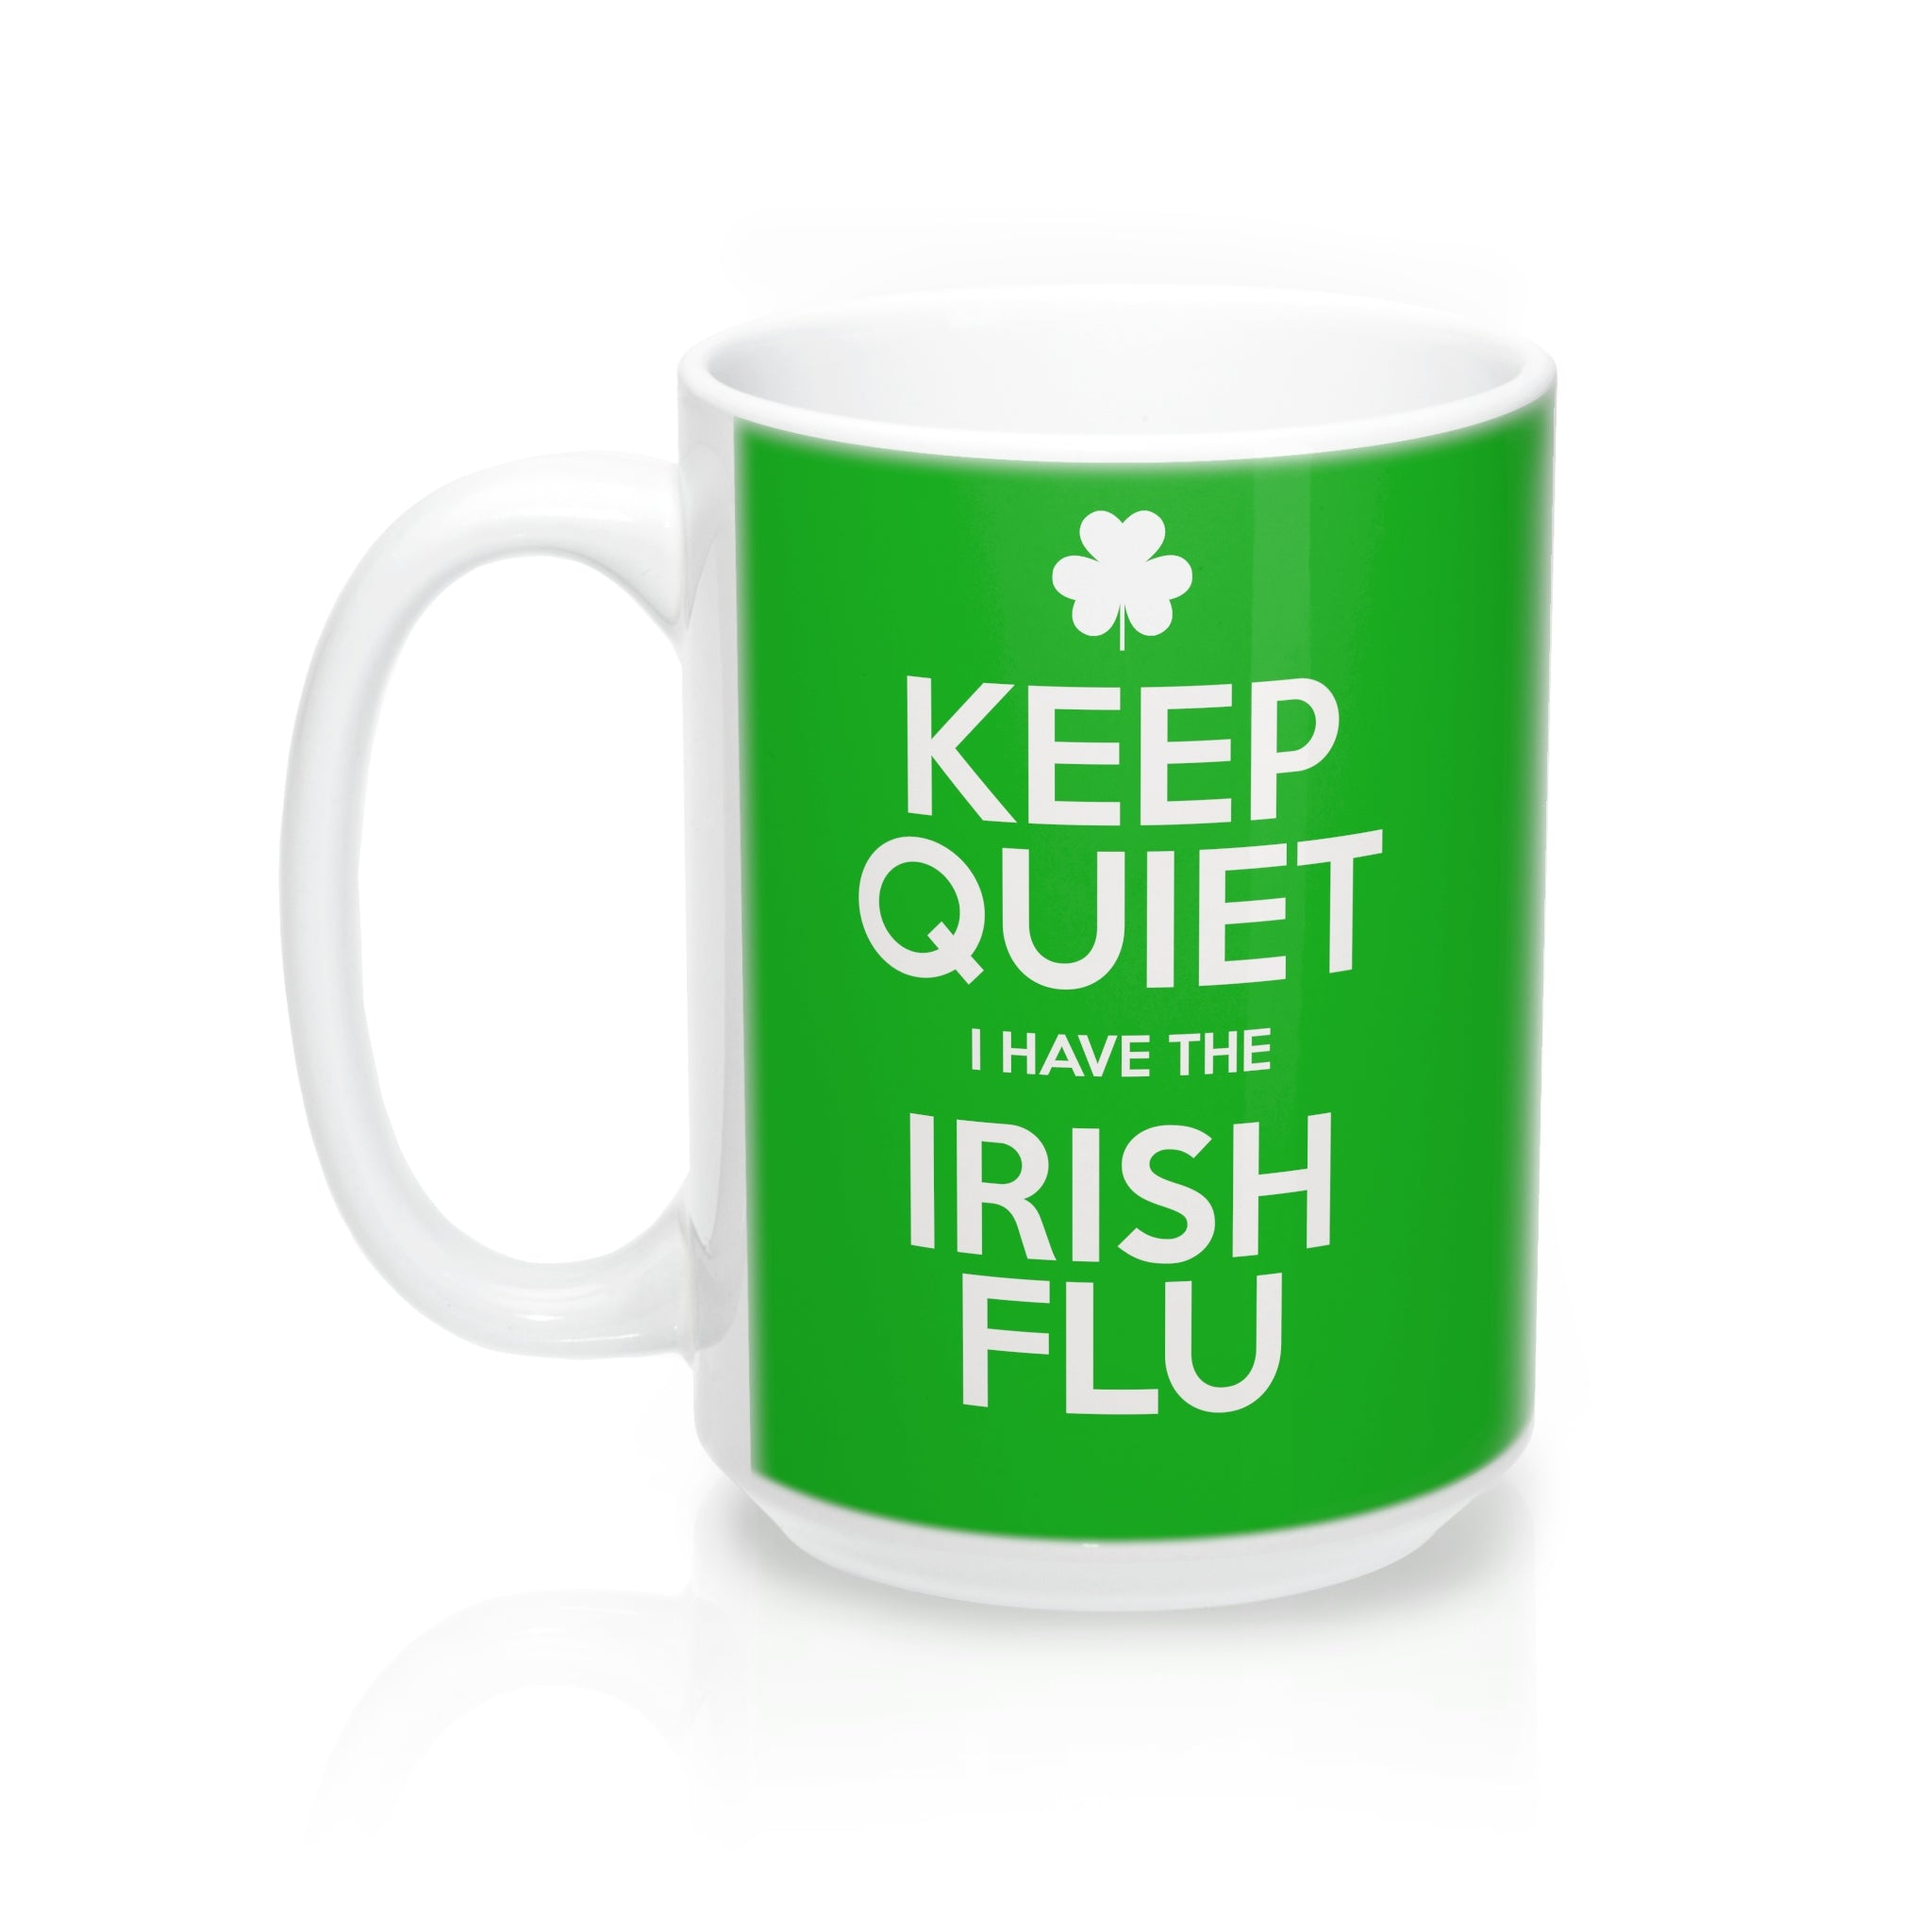 Keep Quiet I Have The Irish Flu - Green Irish Mug